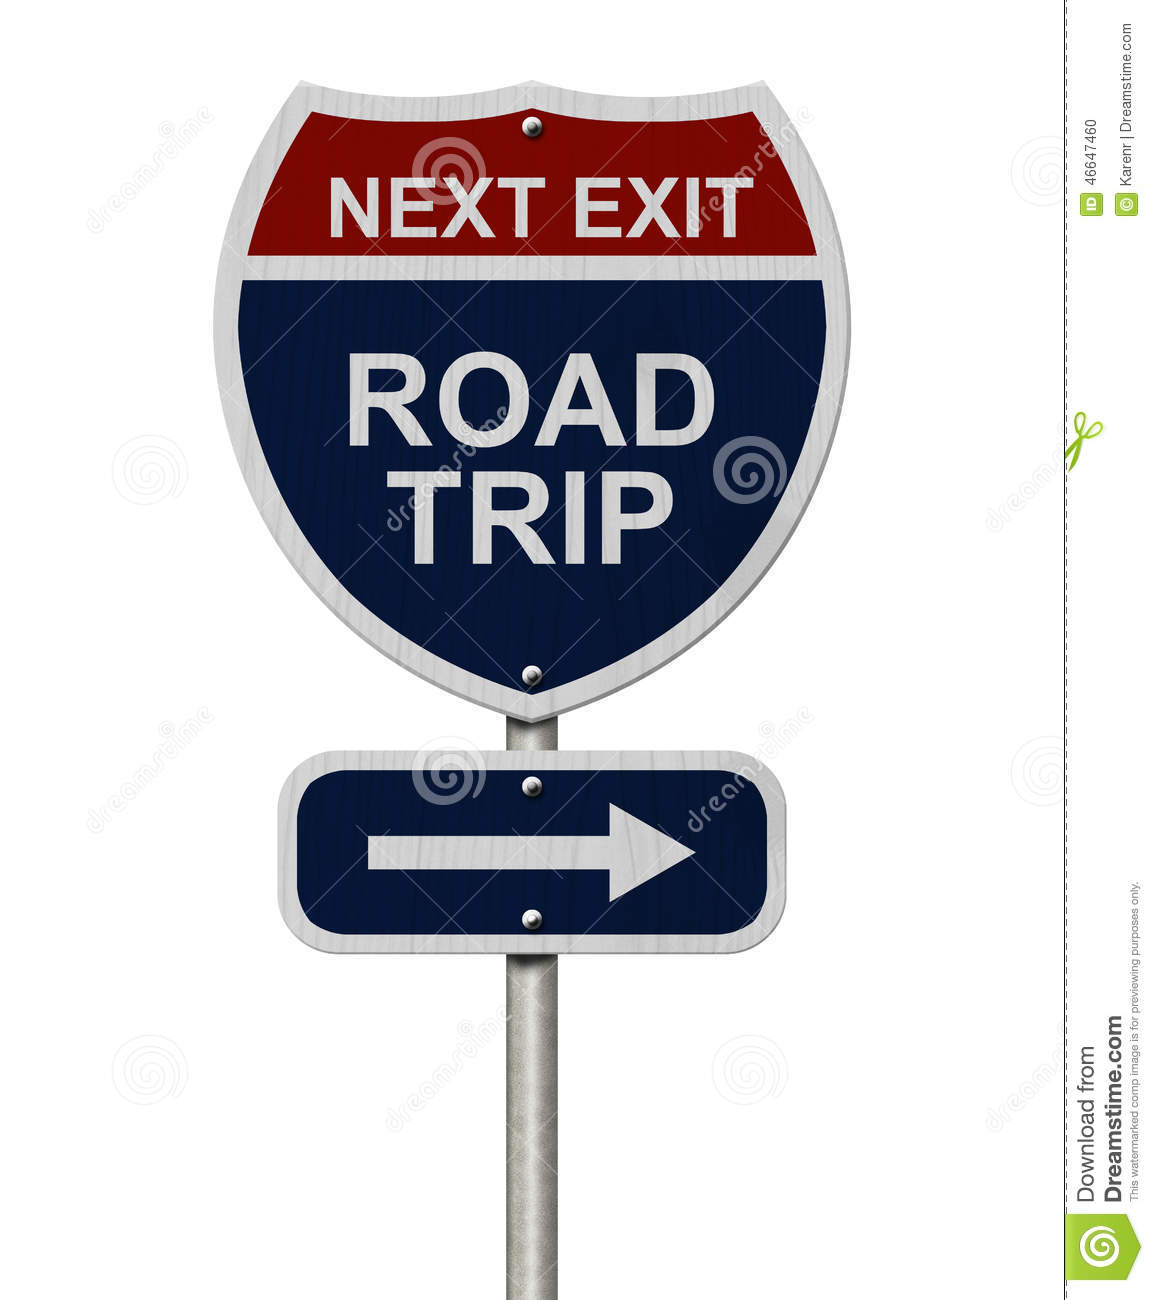 Road Trip Sign Stock Photo Image Of Copy, Metal, Road. Dessert Bar Logo. Clothes Ad Banners. Sad Dp Stickers. Pinewood Derby Decals. Special Promotion Banners. Honda Vtr Decals. Marathi Film Logo. Bride Groom Stickers